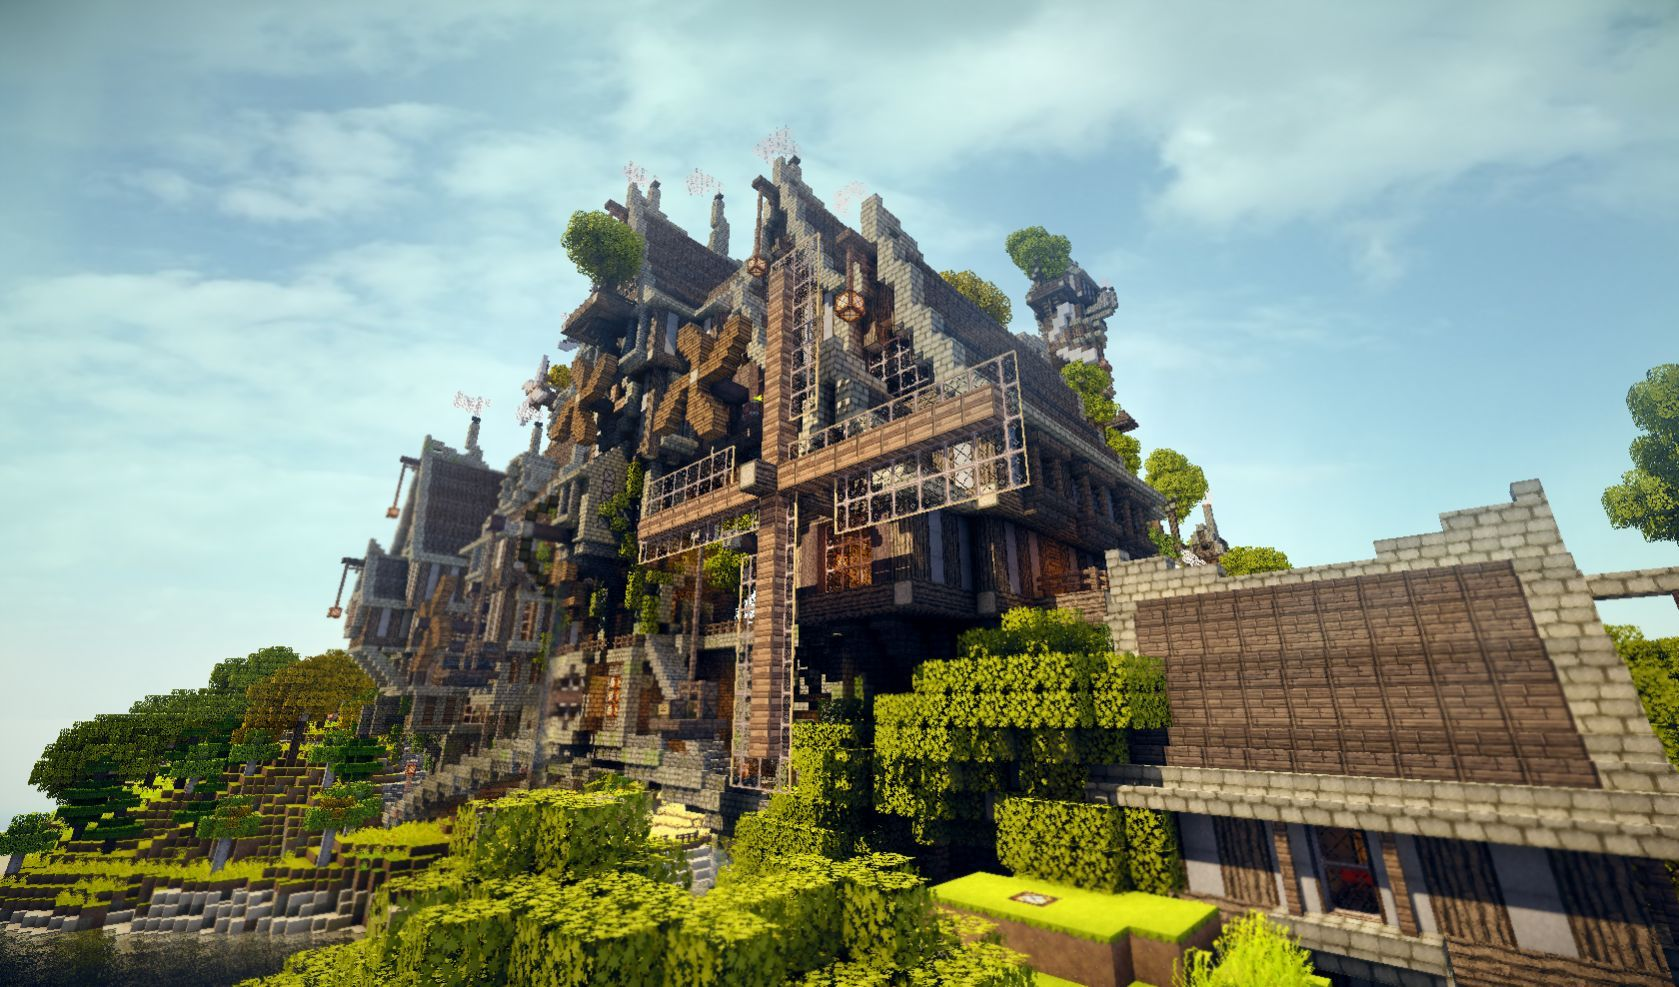 Top 15 minecraft creations minecraft creations minecraft ideas this beautiful minecraft steampunk island map is available for download now so you can experience gumiabroncs Choice Image